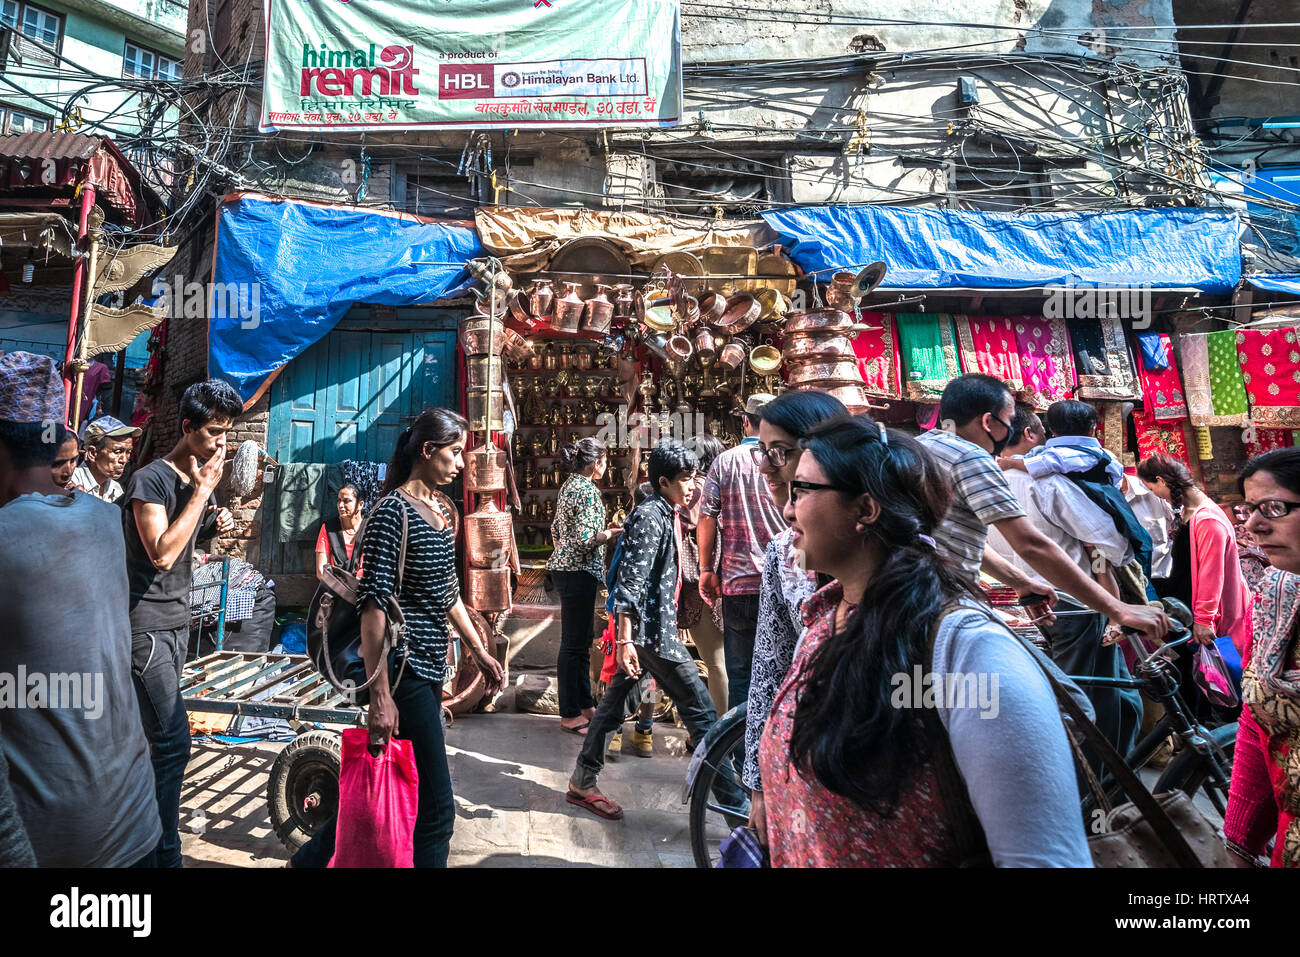 Crowd in an alley of Thamel shopping area. Kathmandu, Nepal. - Stock Image